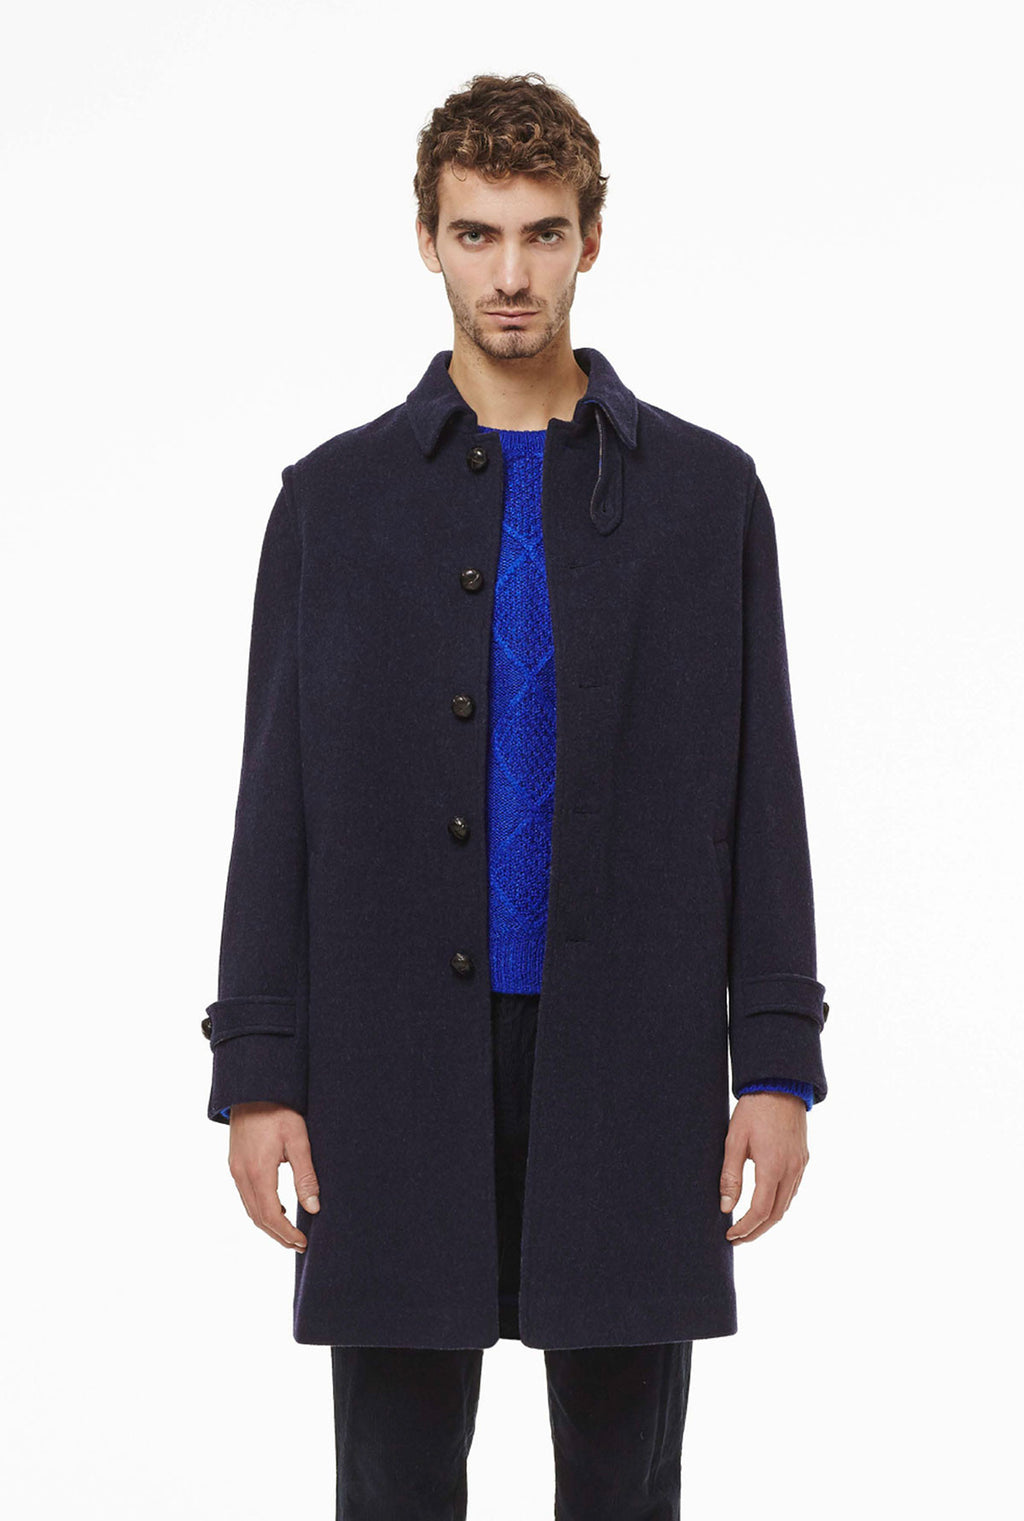 Classic loden coat with details in check fabric.